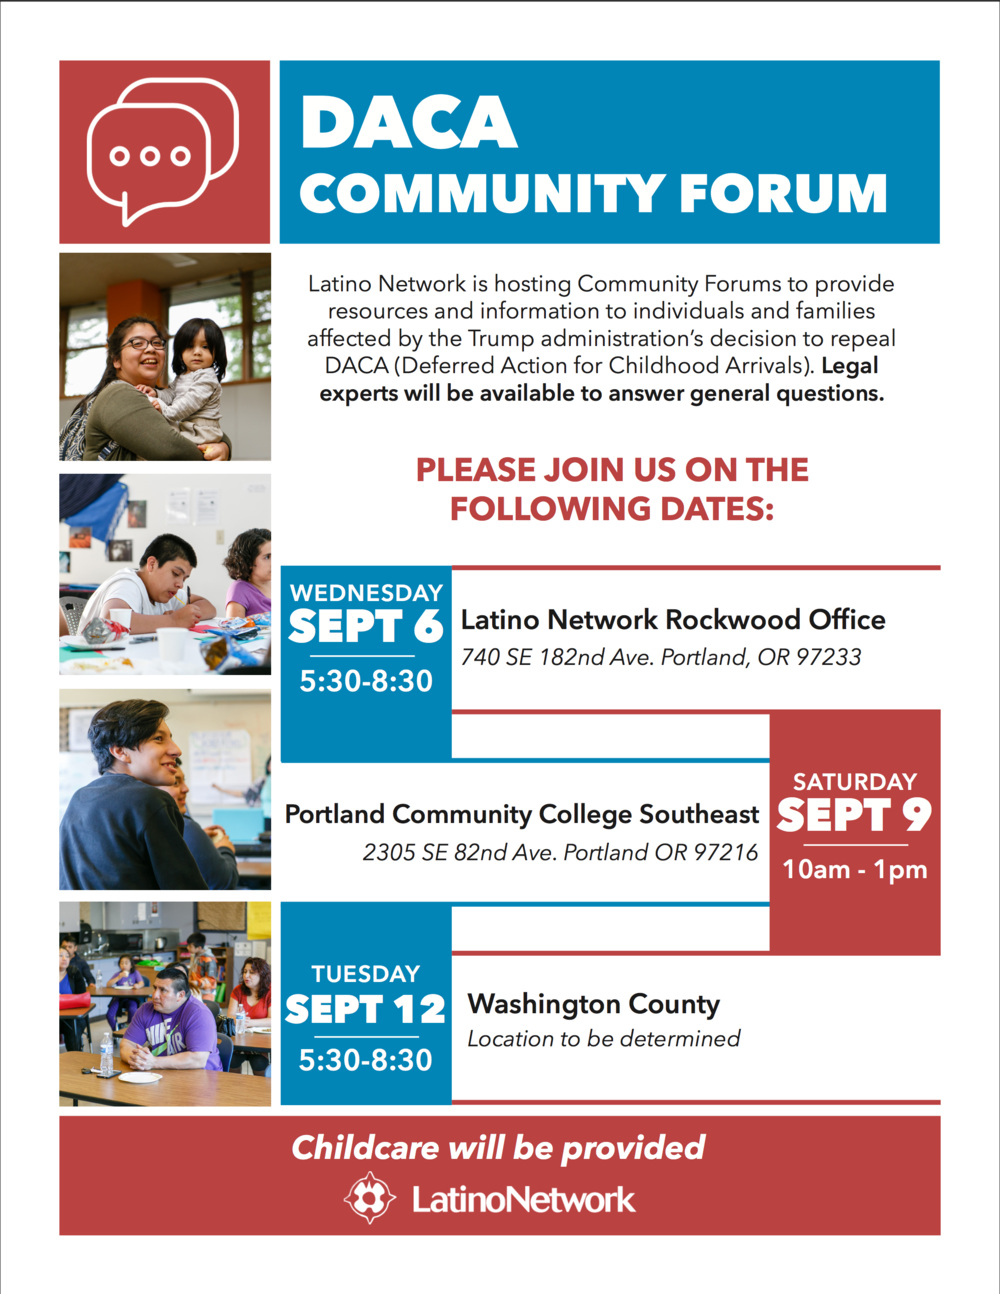 DACA Community Forum - Latino Network is hosting Community Forums